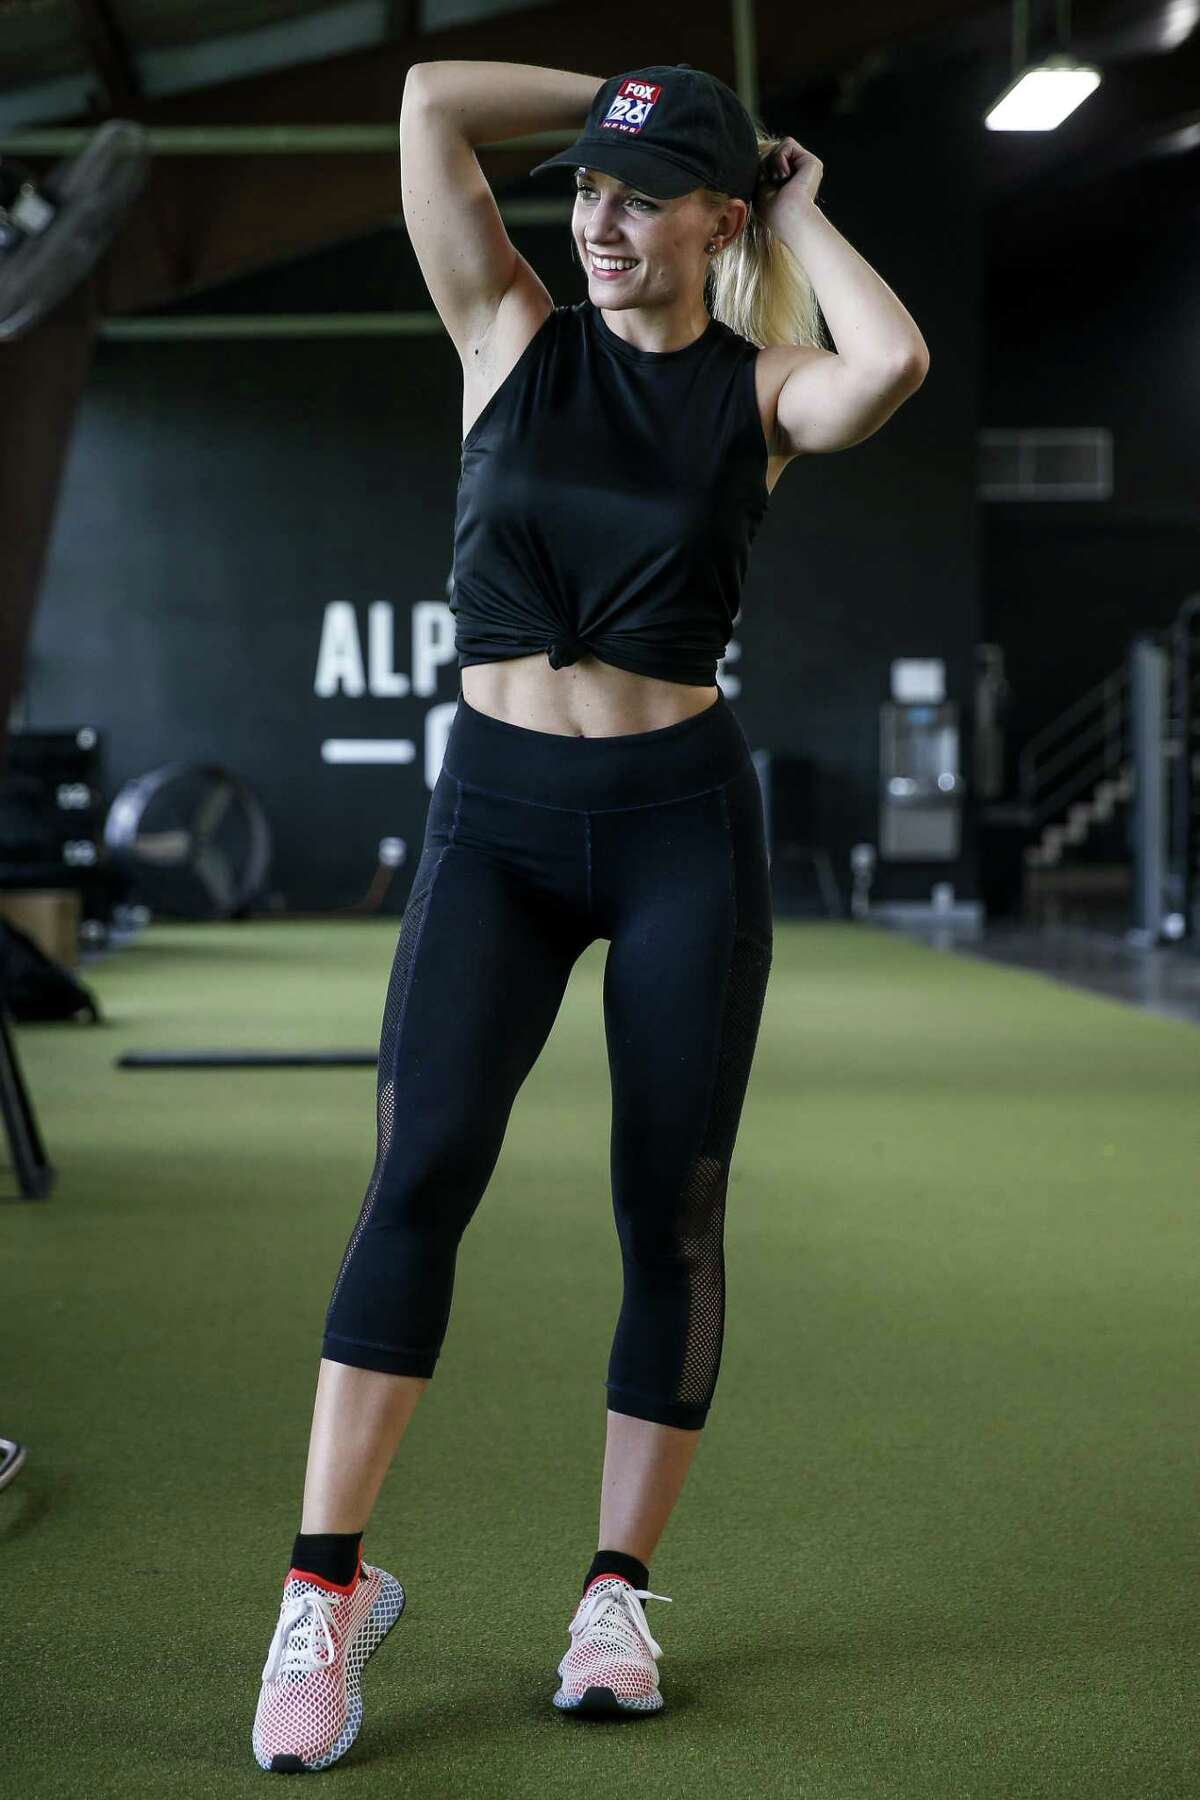 Fox 26 reporter Ivory Hecker poses for a portrait after working out at Alphalete Gym Thursday Aug. 30, 2018 in Stafford.